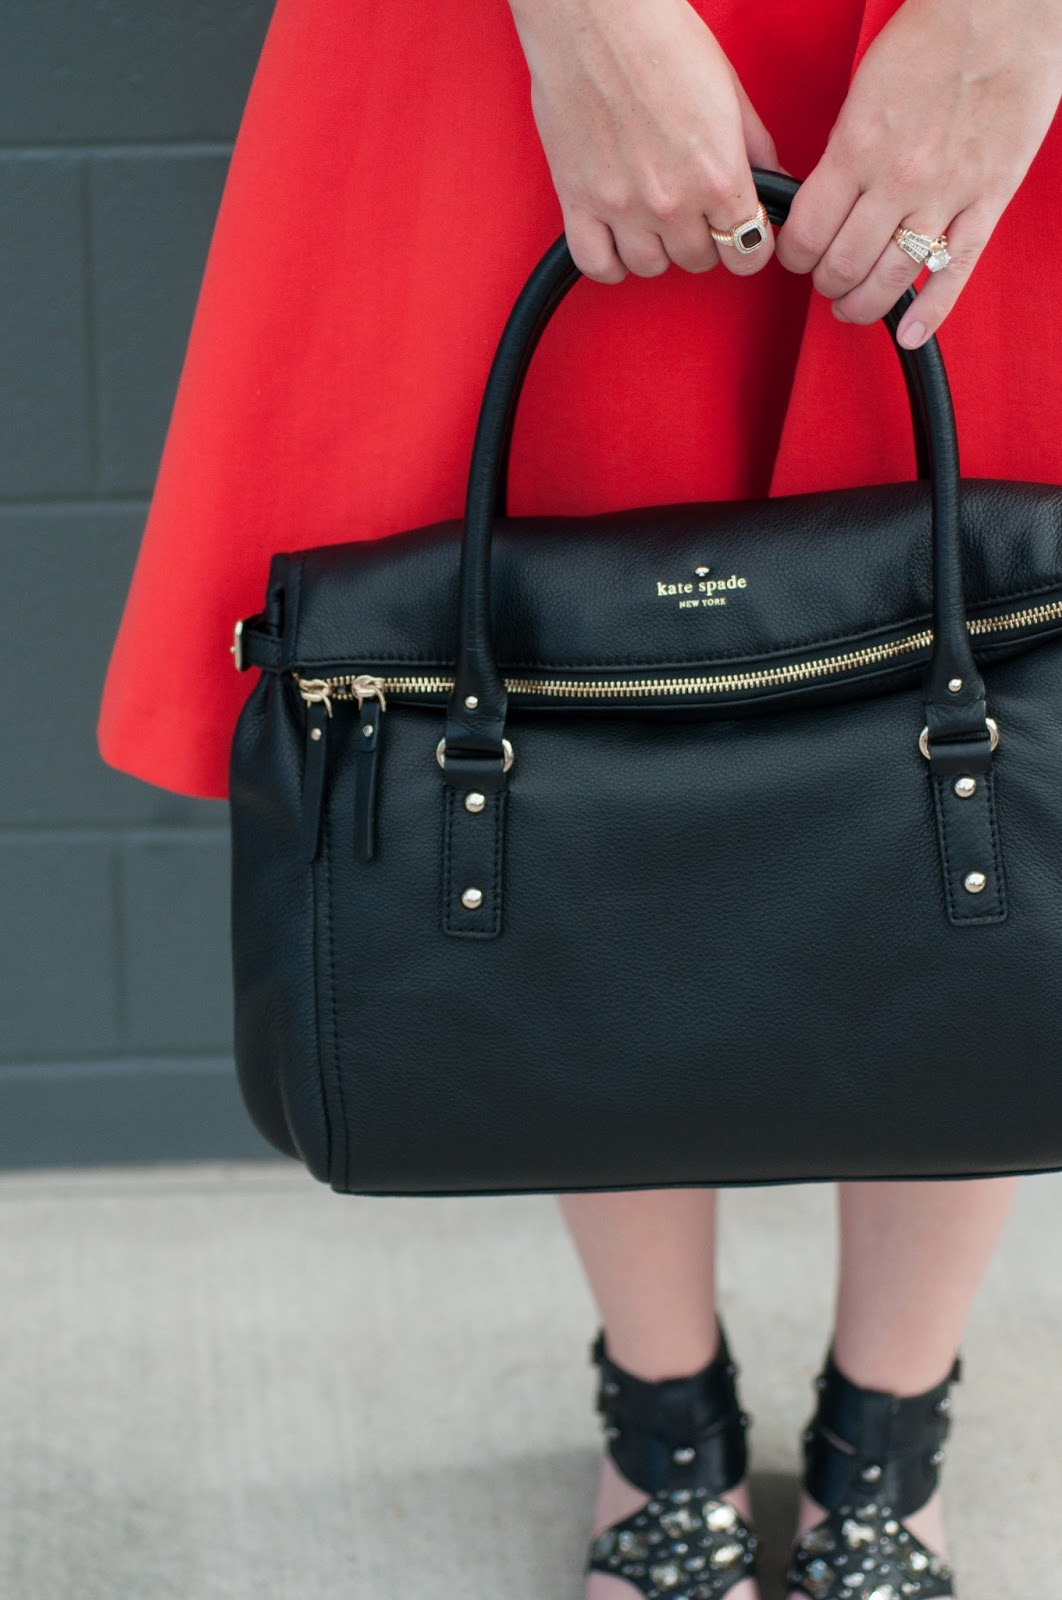 fashion blog, style blog, sam edelman, kate spade new york, h and m, ootd, designer handbag